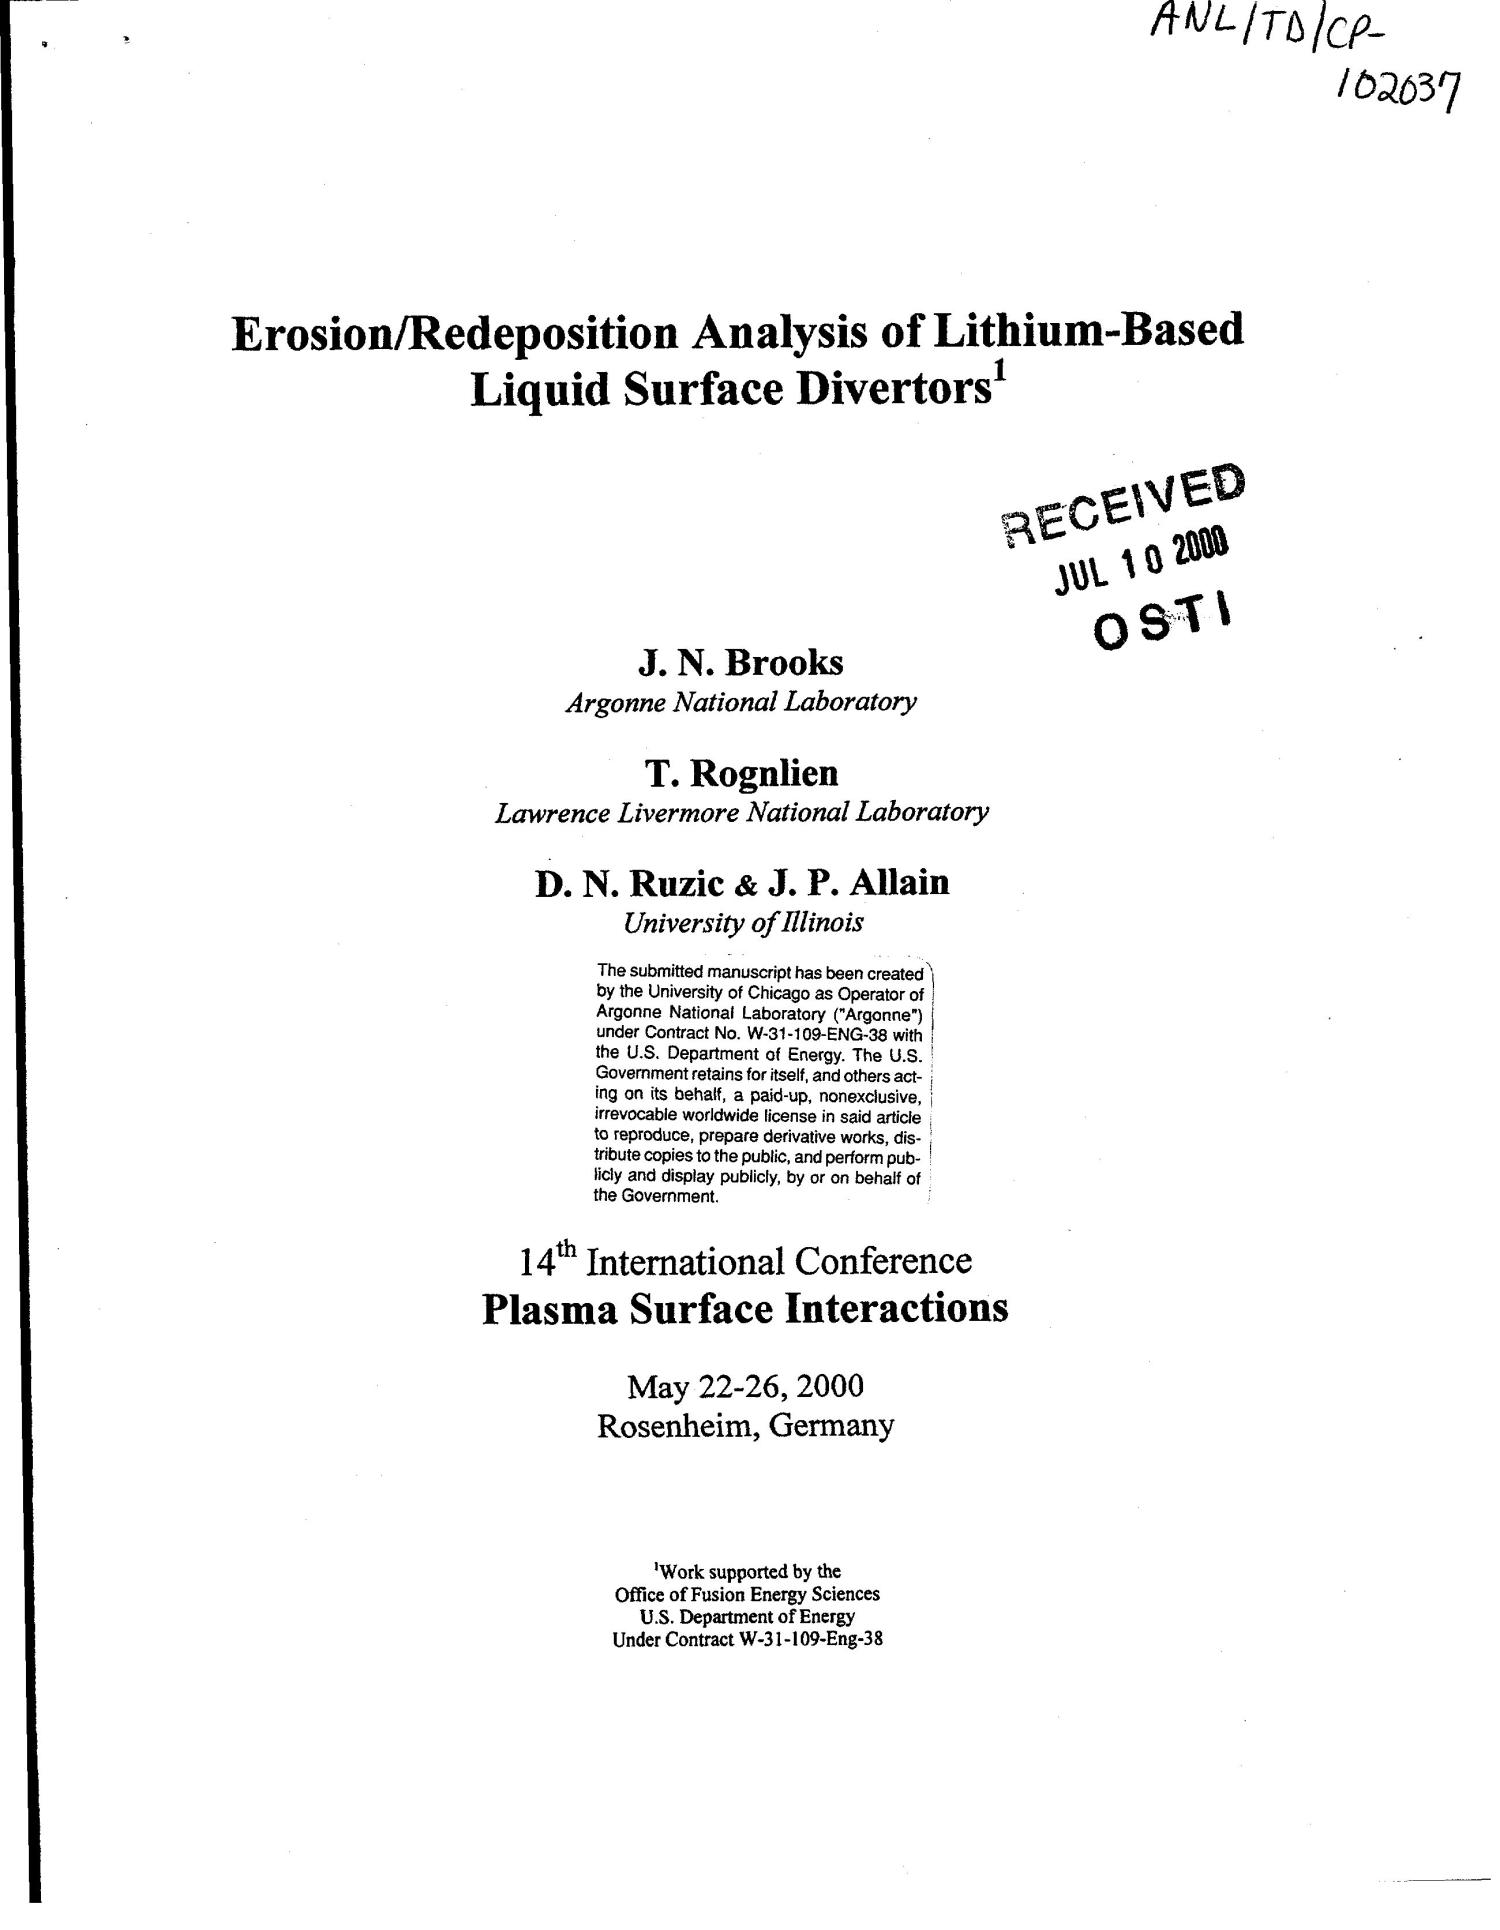 Erosion/redeposition analysis of lithium-based liquid surface divertors.                                                                                                      [Sequence #]: 1 of 22